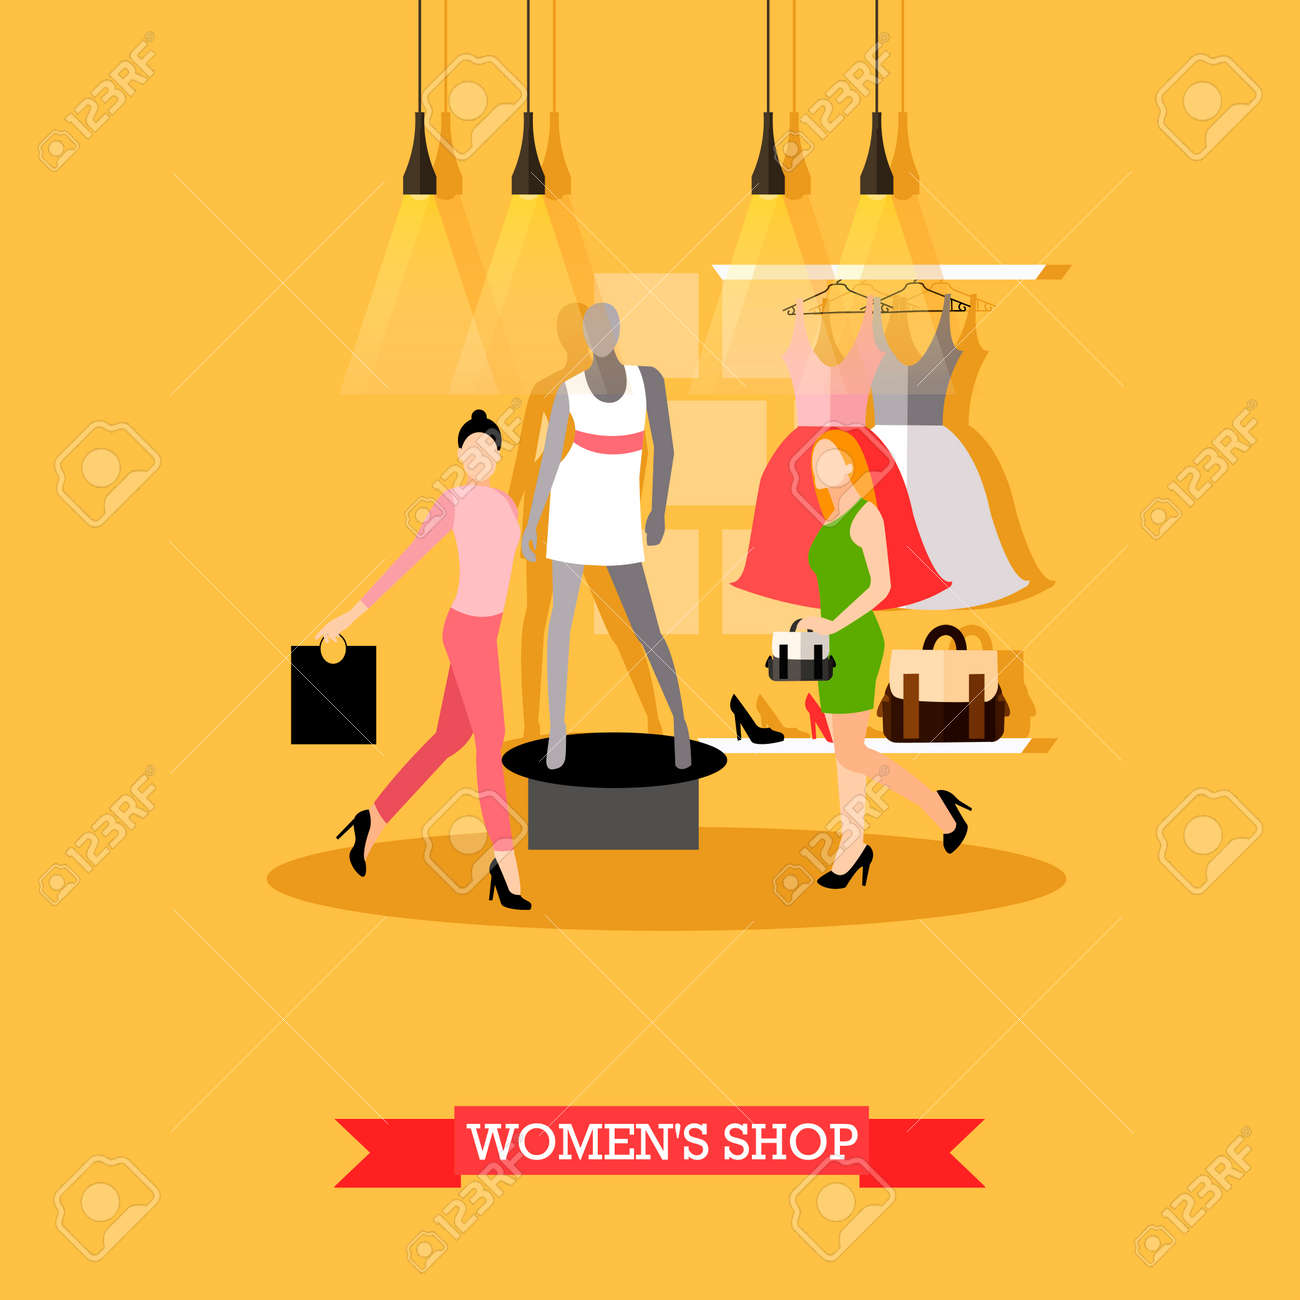 9d38ae913 Vector - Vector illustration of womens shop in flat style. Women shopping,  mannequin in casual summer clothes, dresses on hangers.